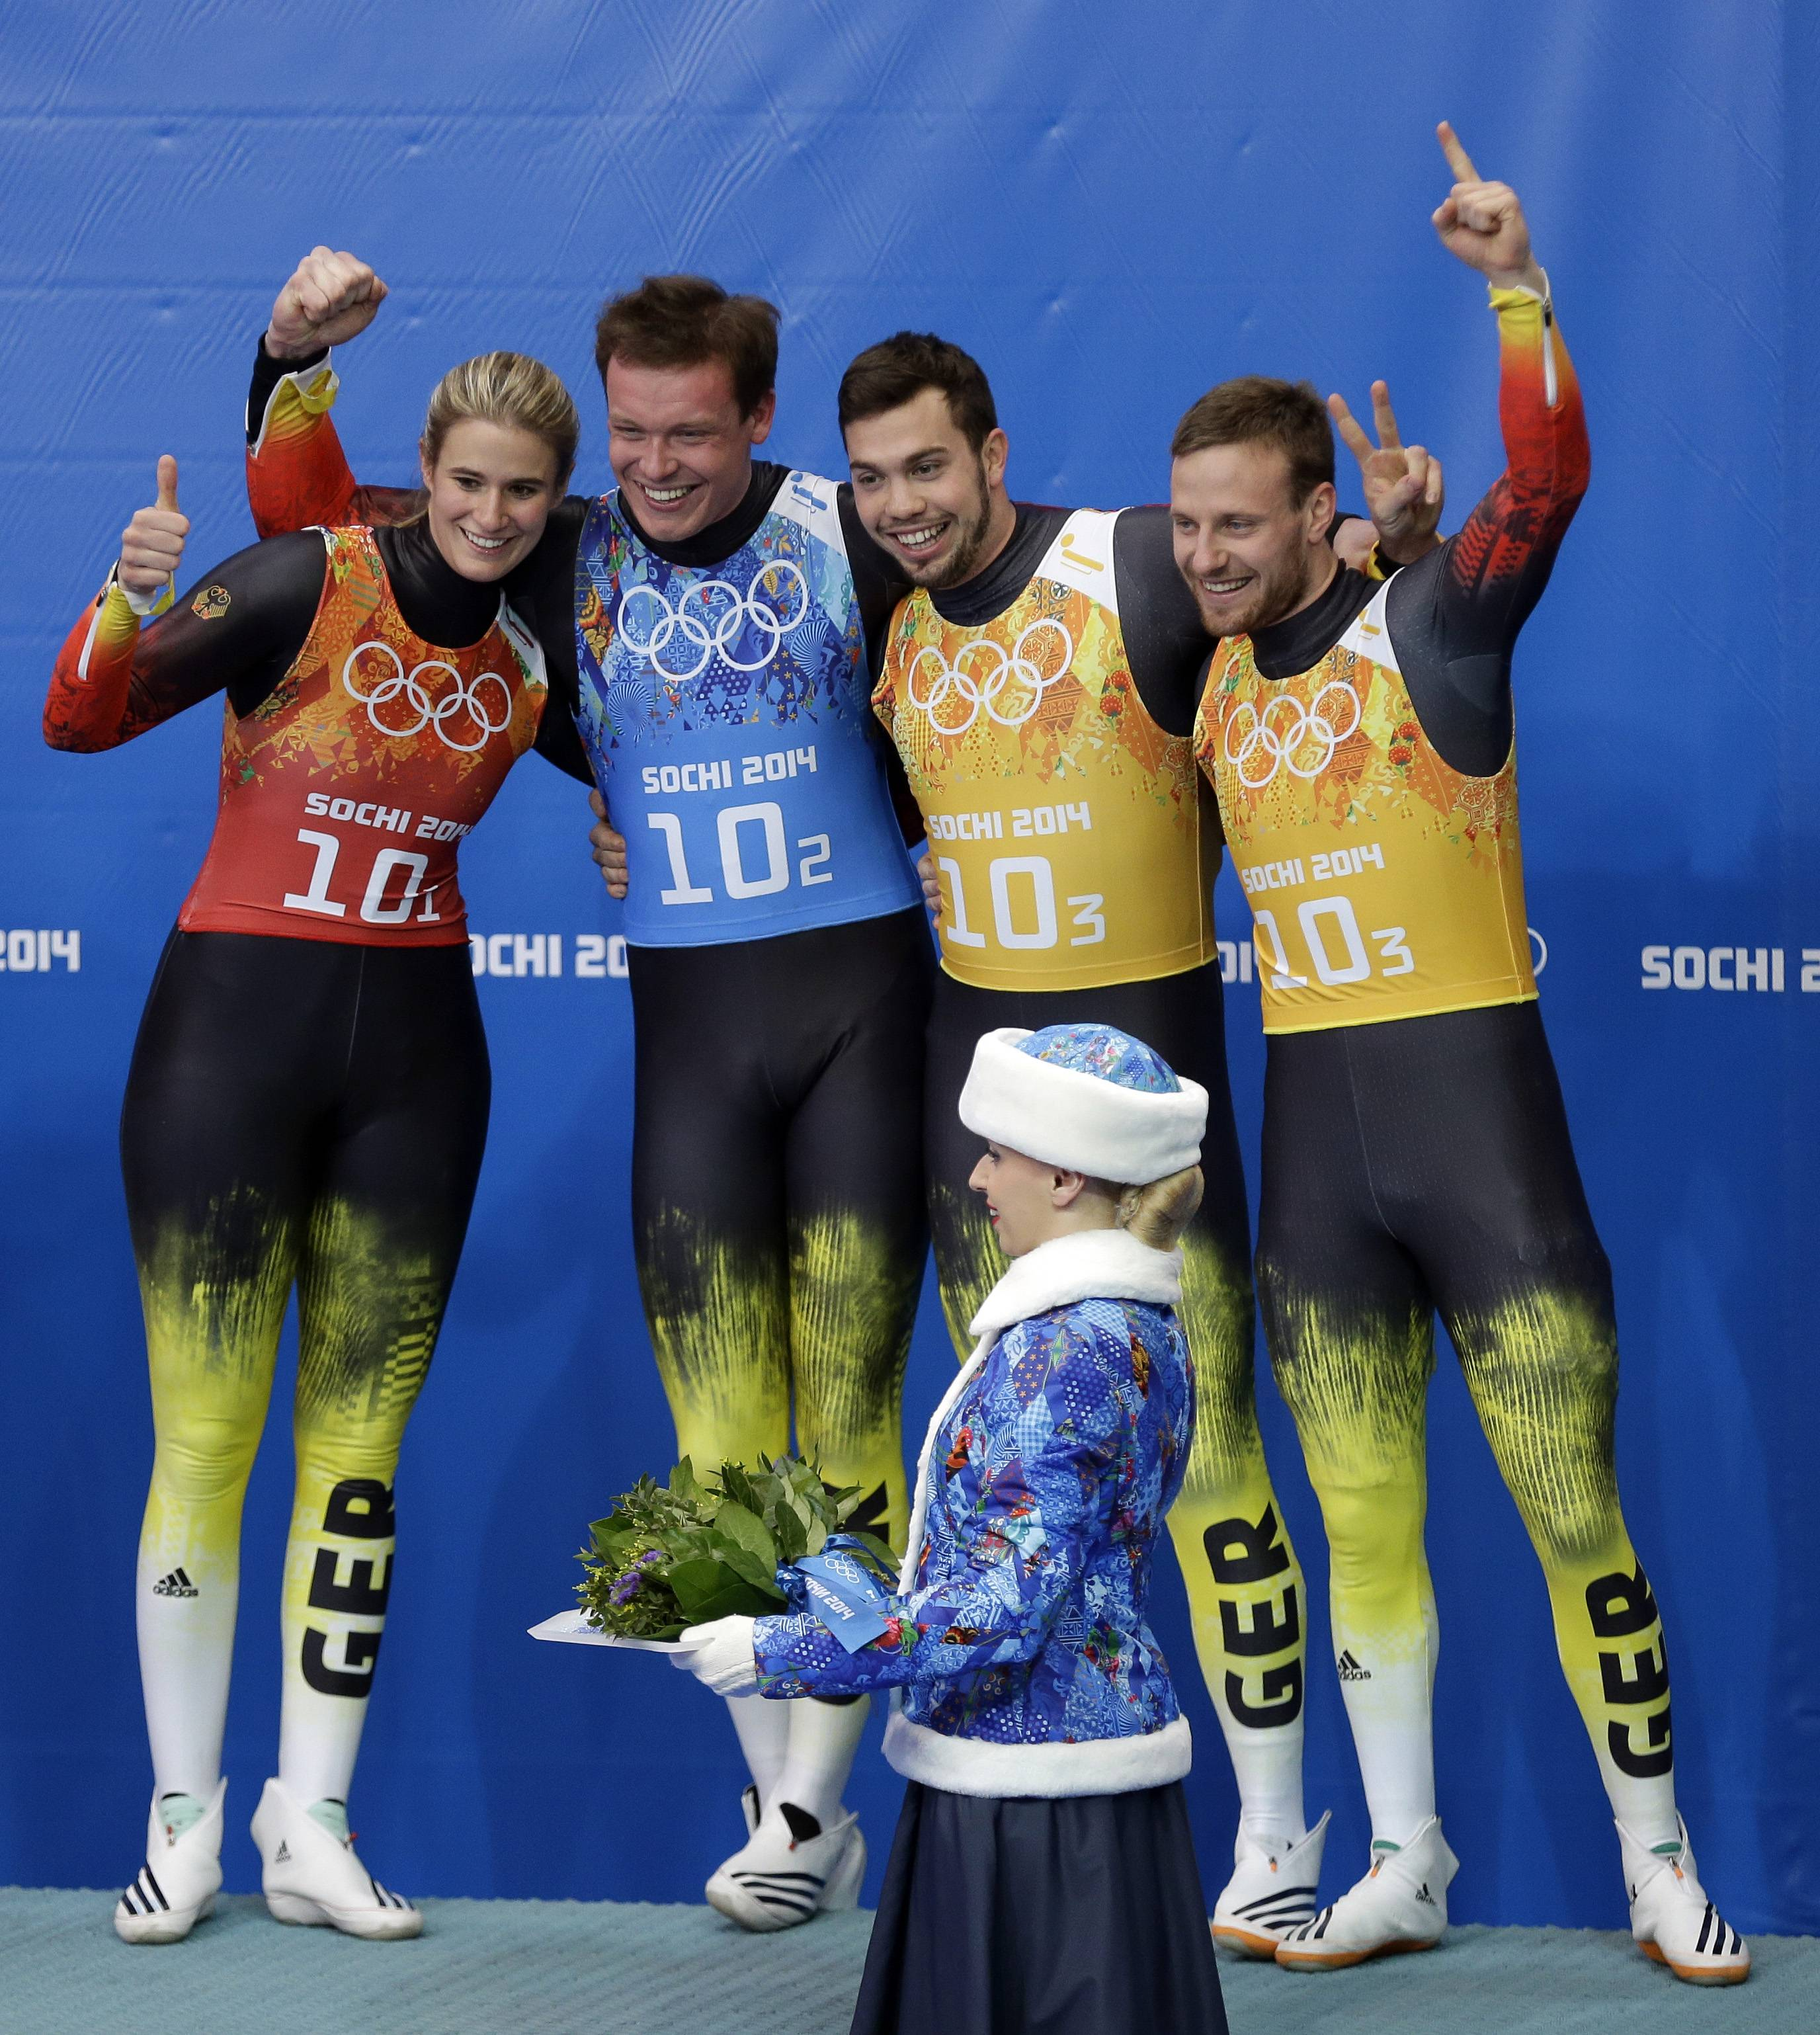 The German team of Natalie Geisenberger, in orange, Felix Loch, in blue, and doubles team of Tobias Wendl and Tobias Arlt, in yellow, wait for the flower ceremony to begin after winning the gold medal during the luge team relay competition at the 2014 Winter Olympics, Thursday, Feb. 13, 2014, in Krasnaya Polyana, Russia.